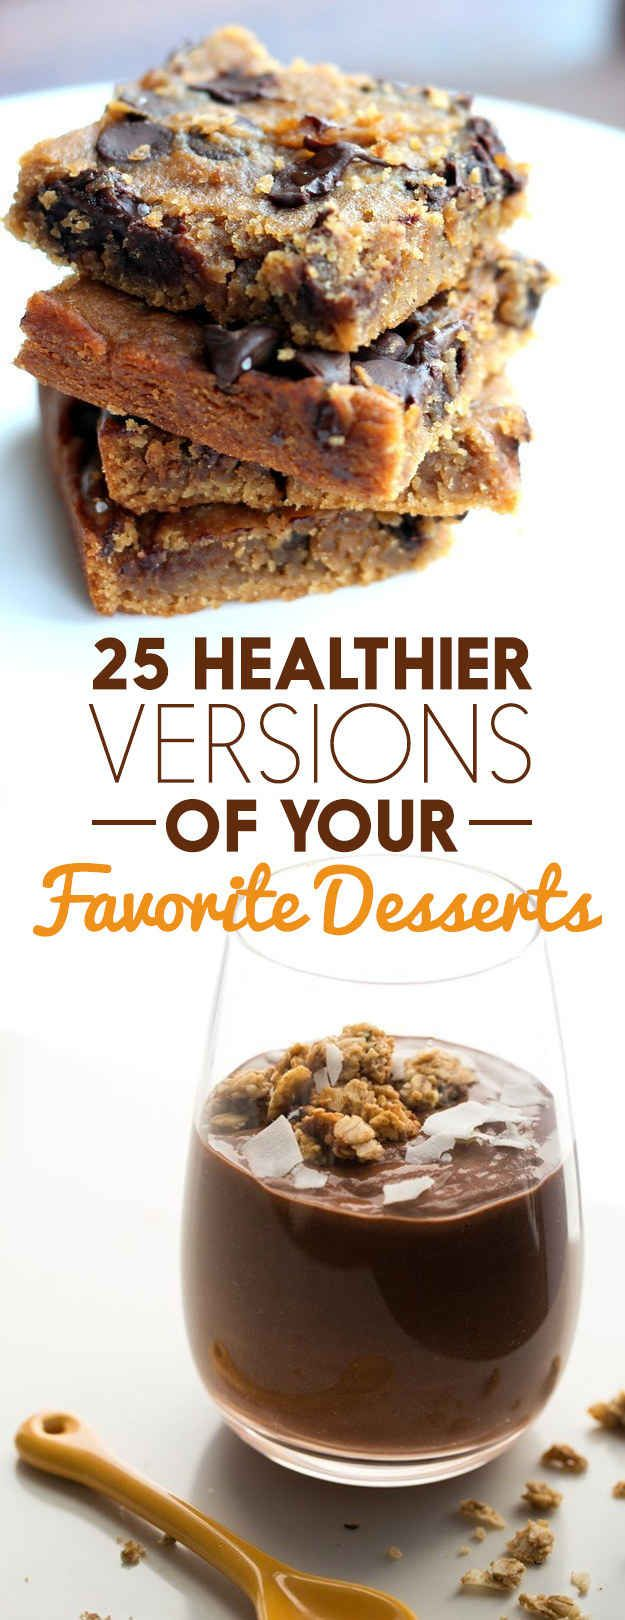 25 Healthier Versions Of Your Favorite Desserts | Some raw, vegan desserts here too.